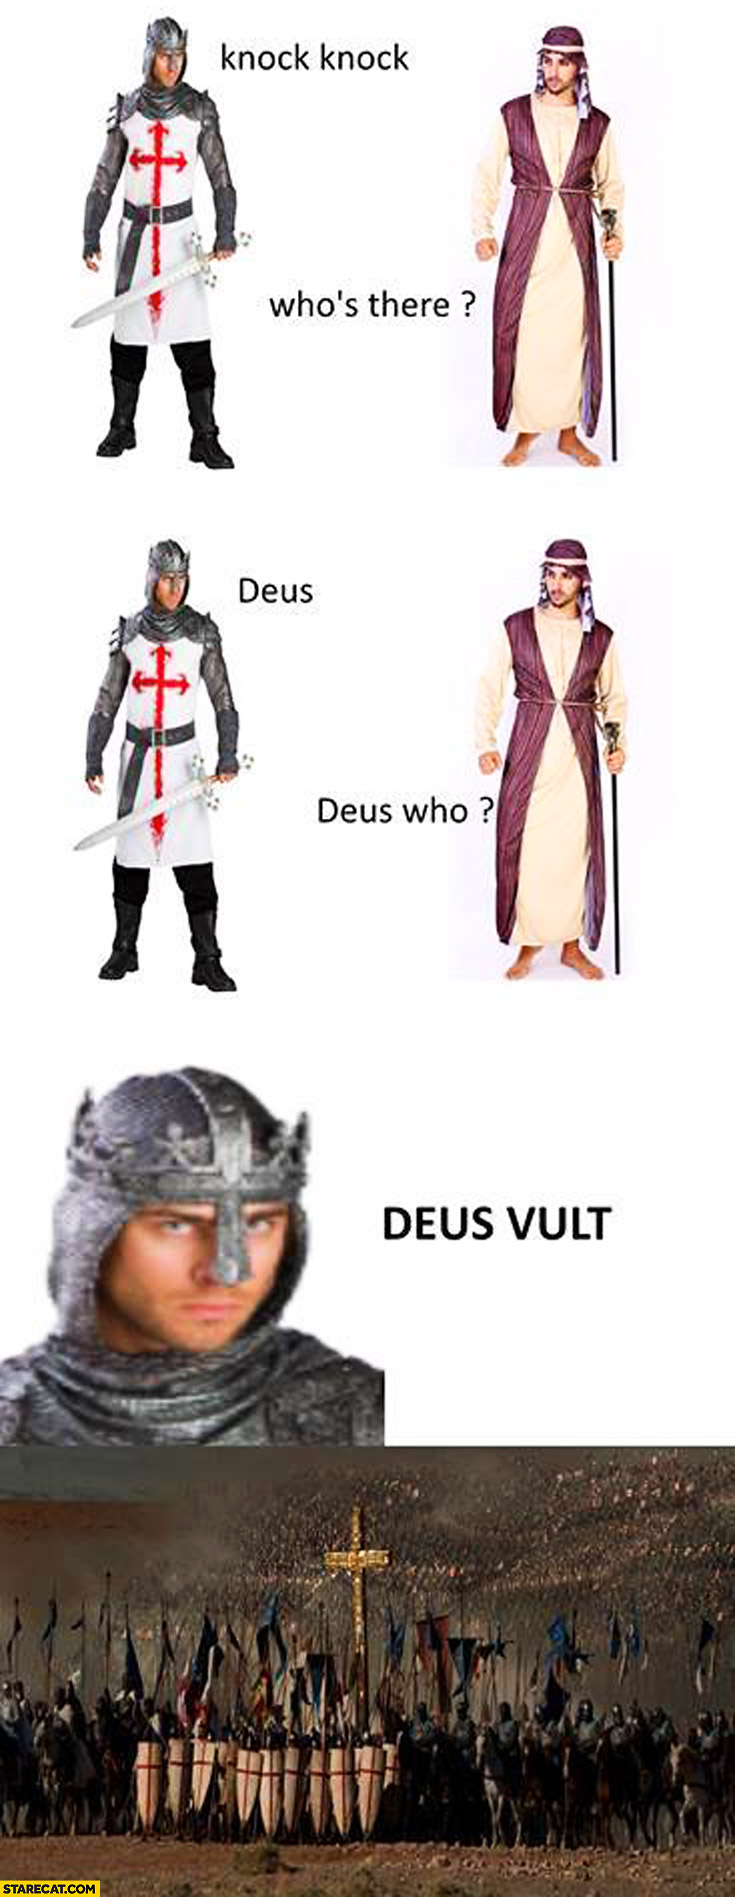 Knock knock. Who's there? Deus. Deus who? Deus vult